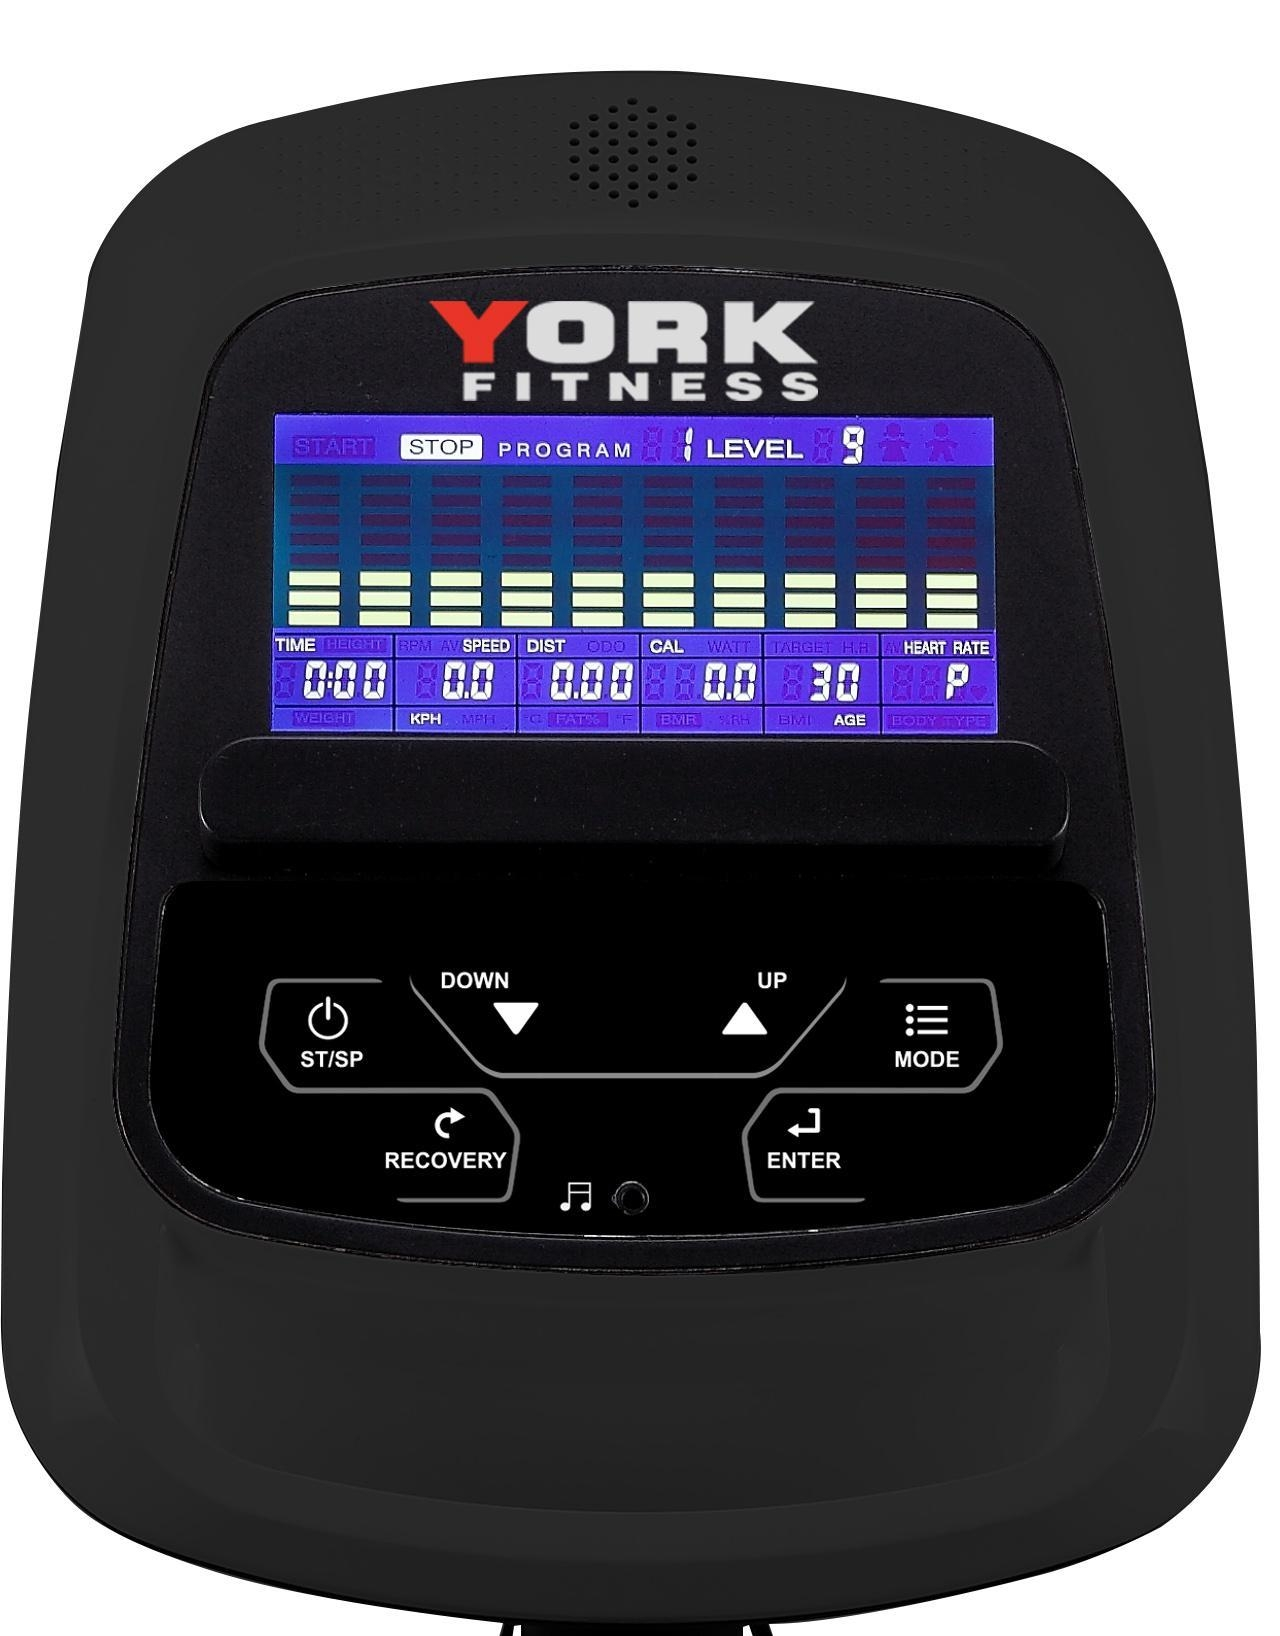 York X515 Cross Trainer Console